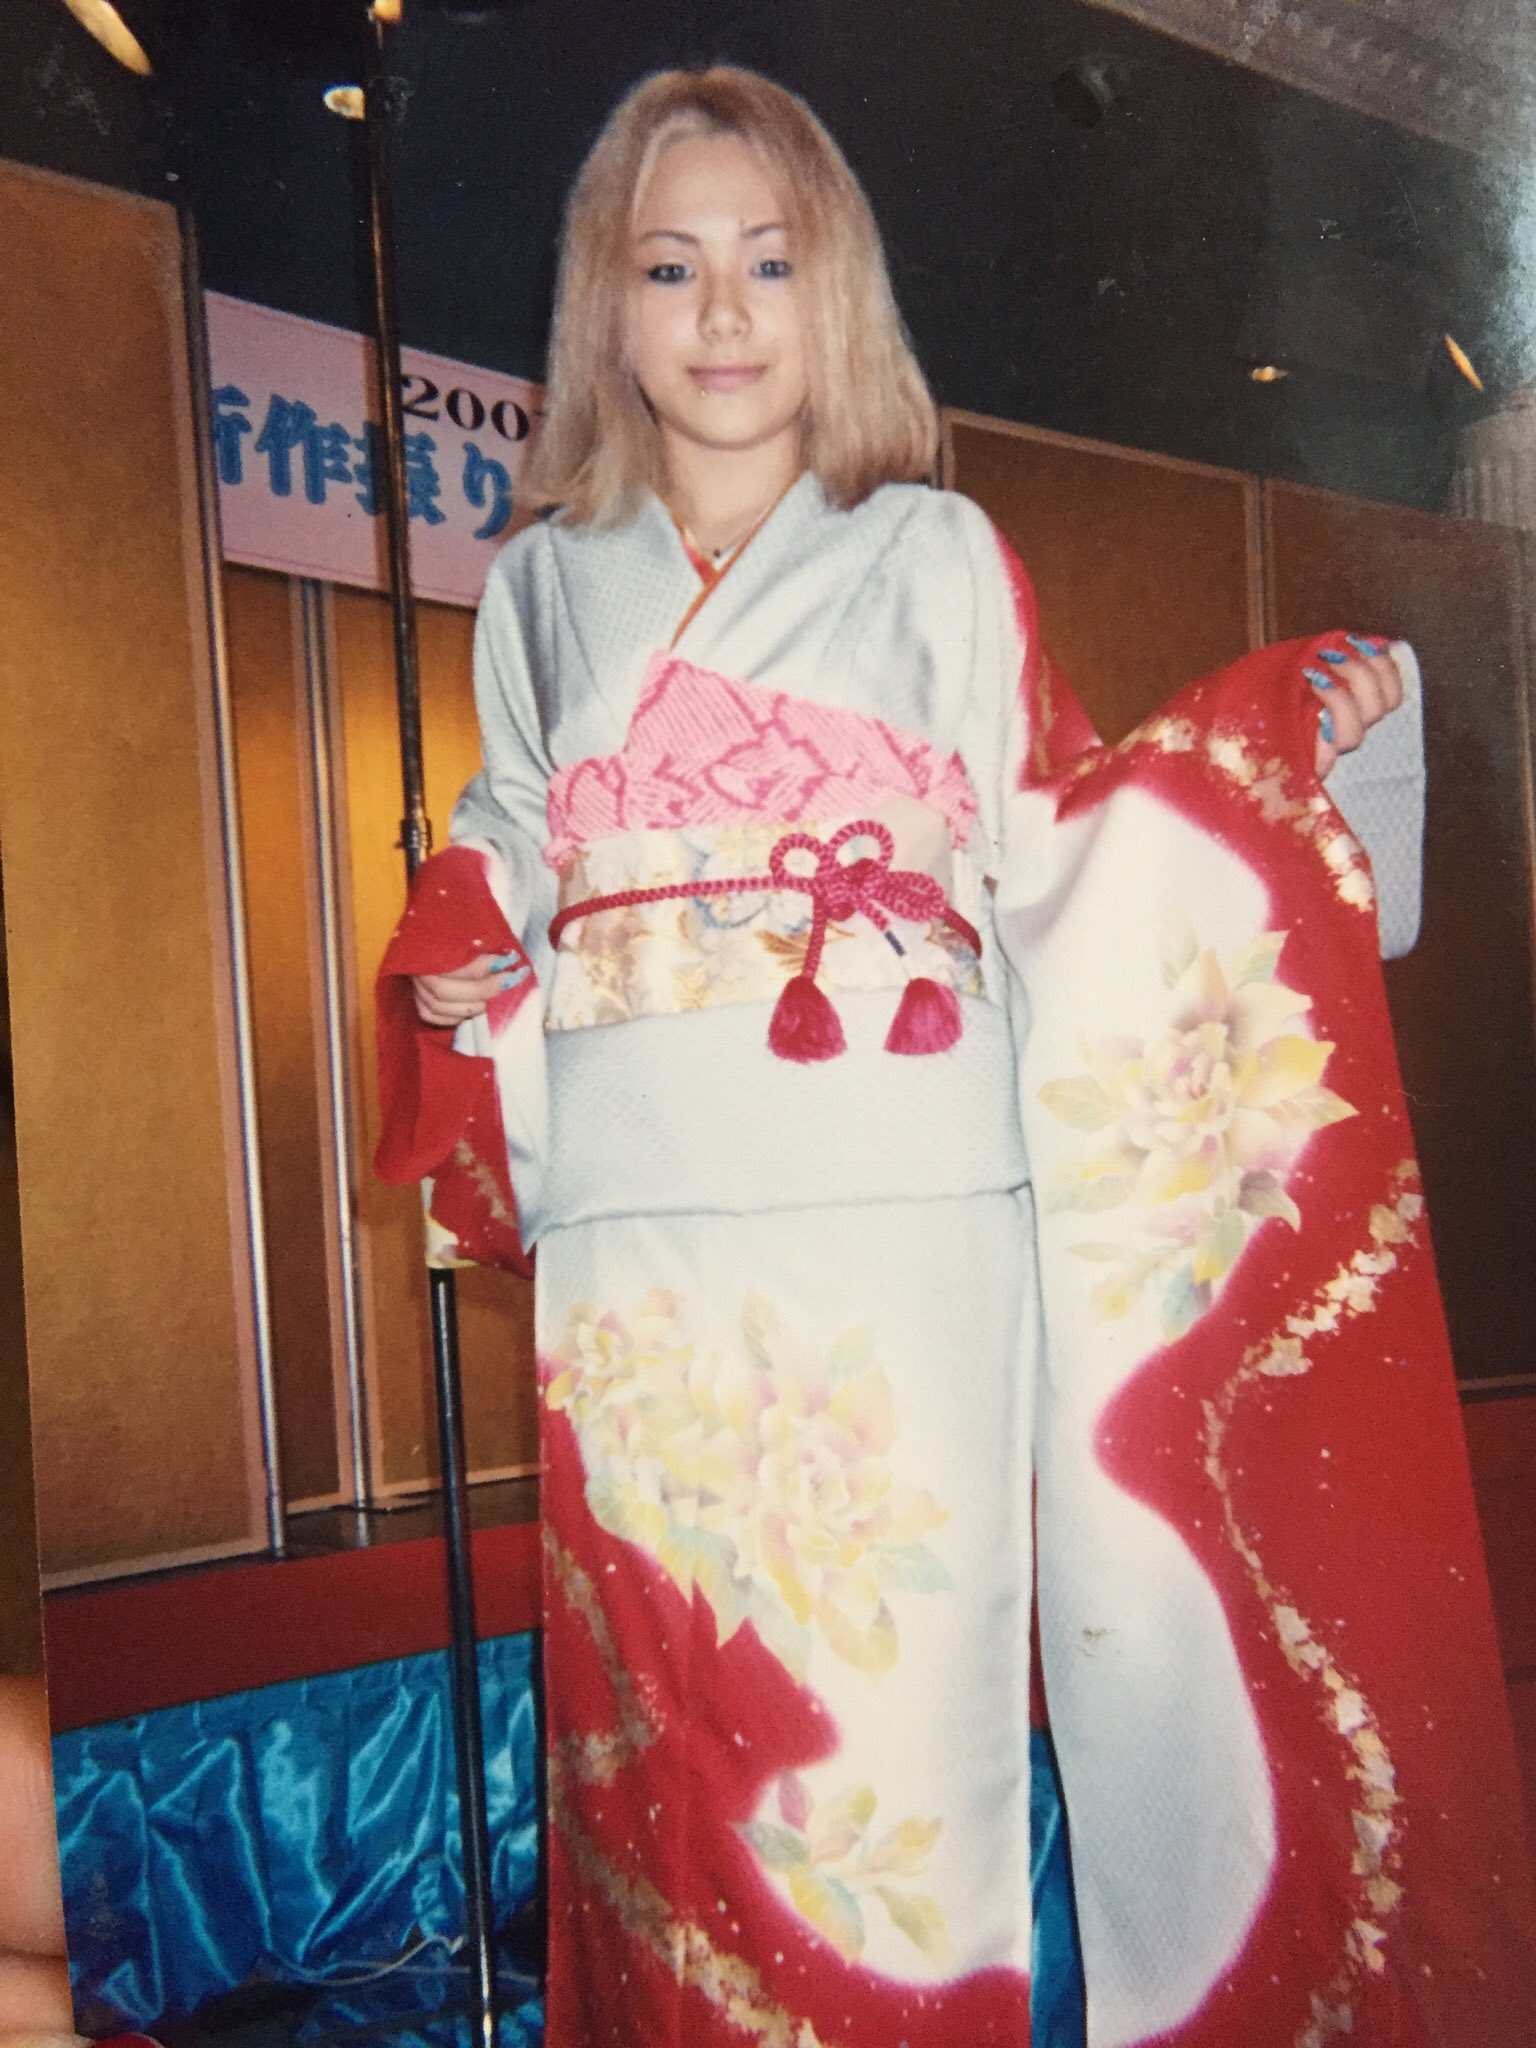 Yoko Moncol On Twitter Kim I M Sure Your Shapewear S Nice But Please Don T Take The Name Of A Beautiful Traditional Japanese Wardrobe And Use It For Your Undies This Is Me In